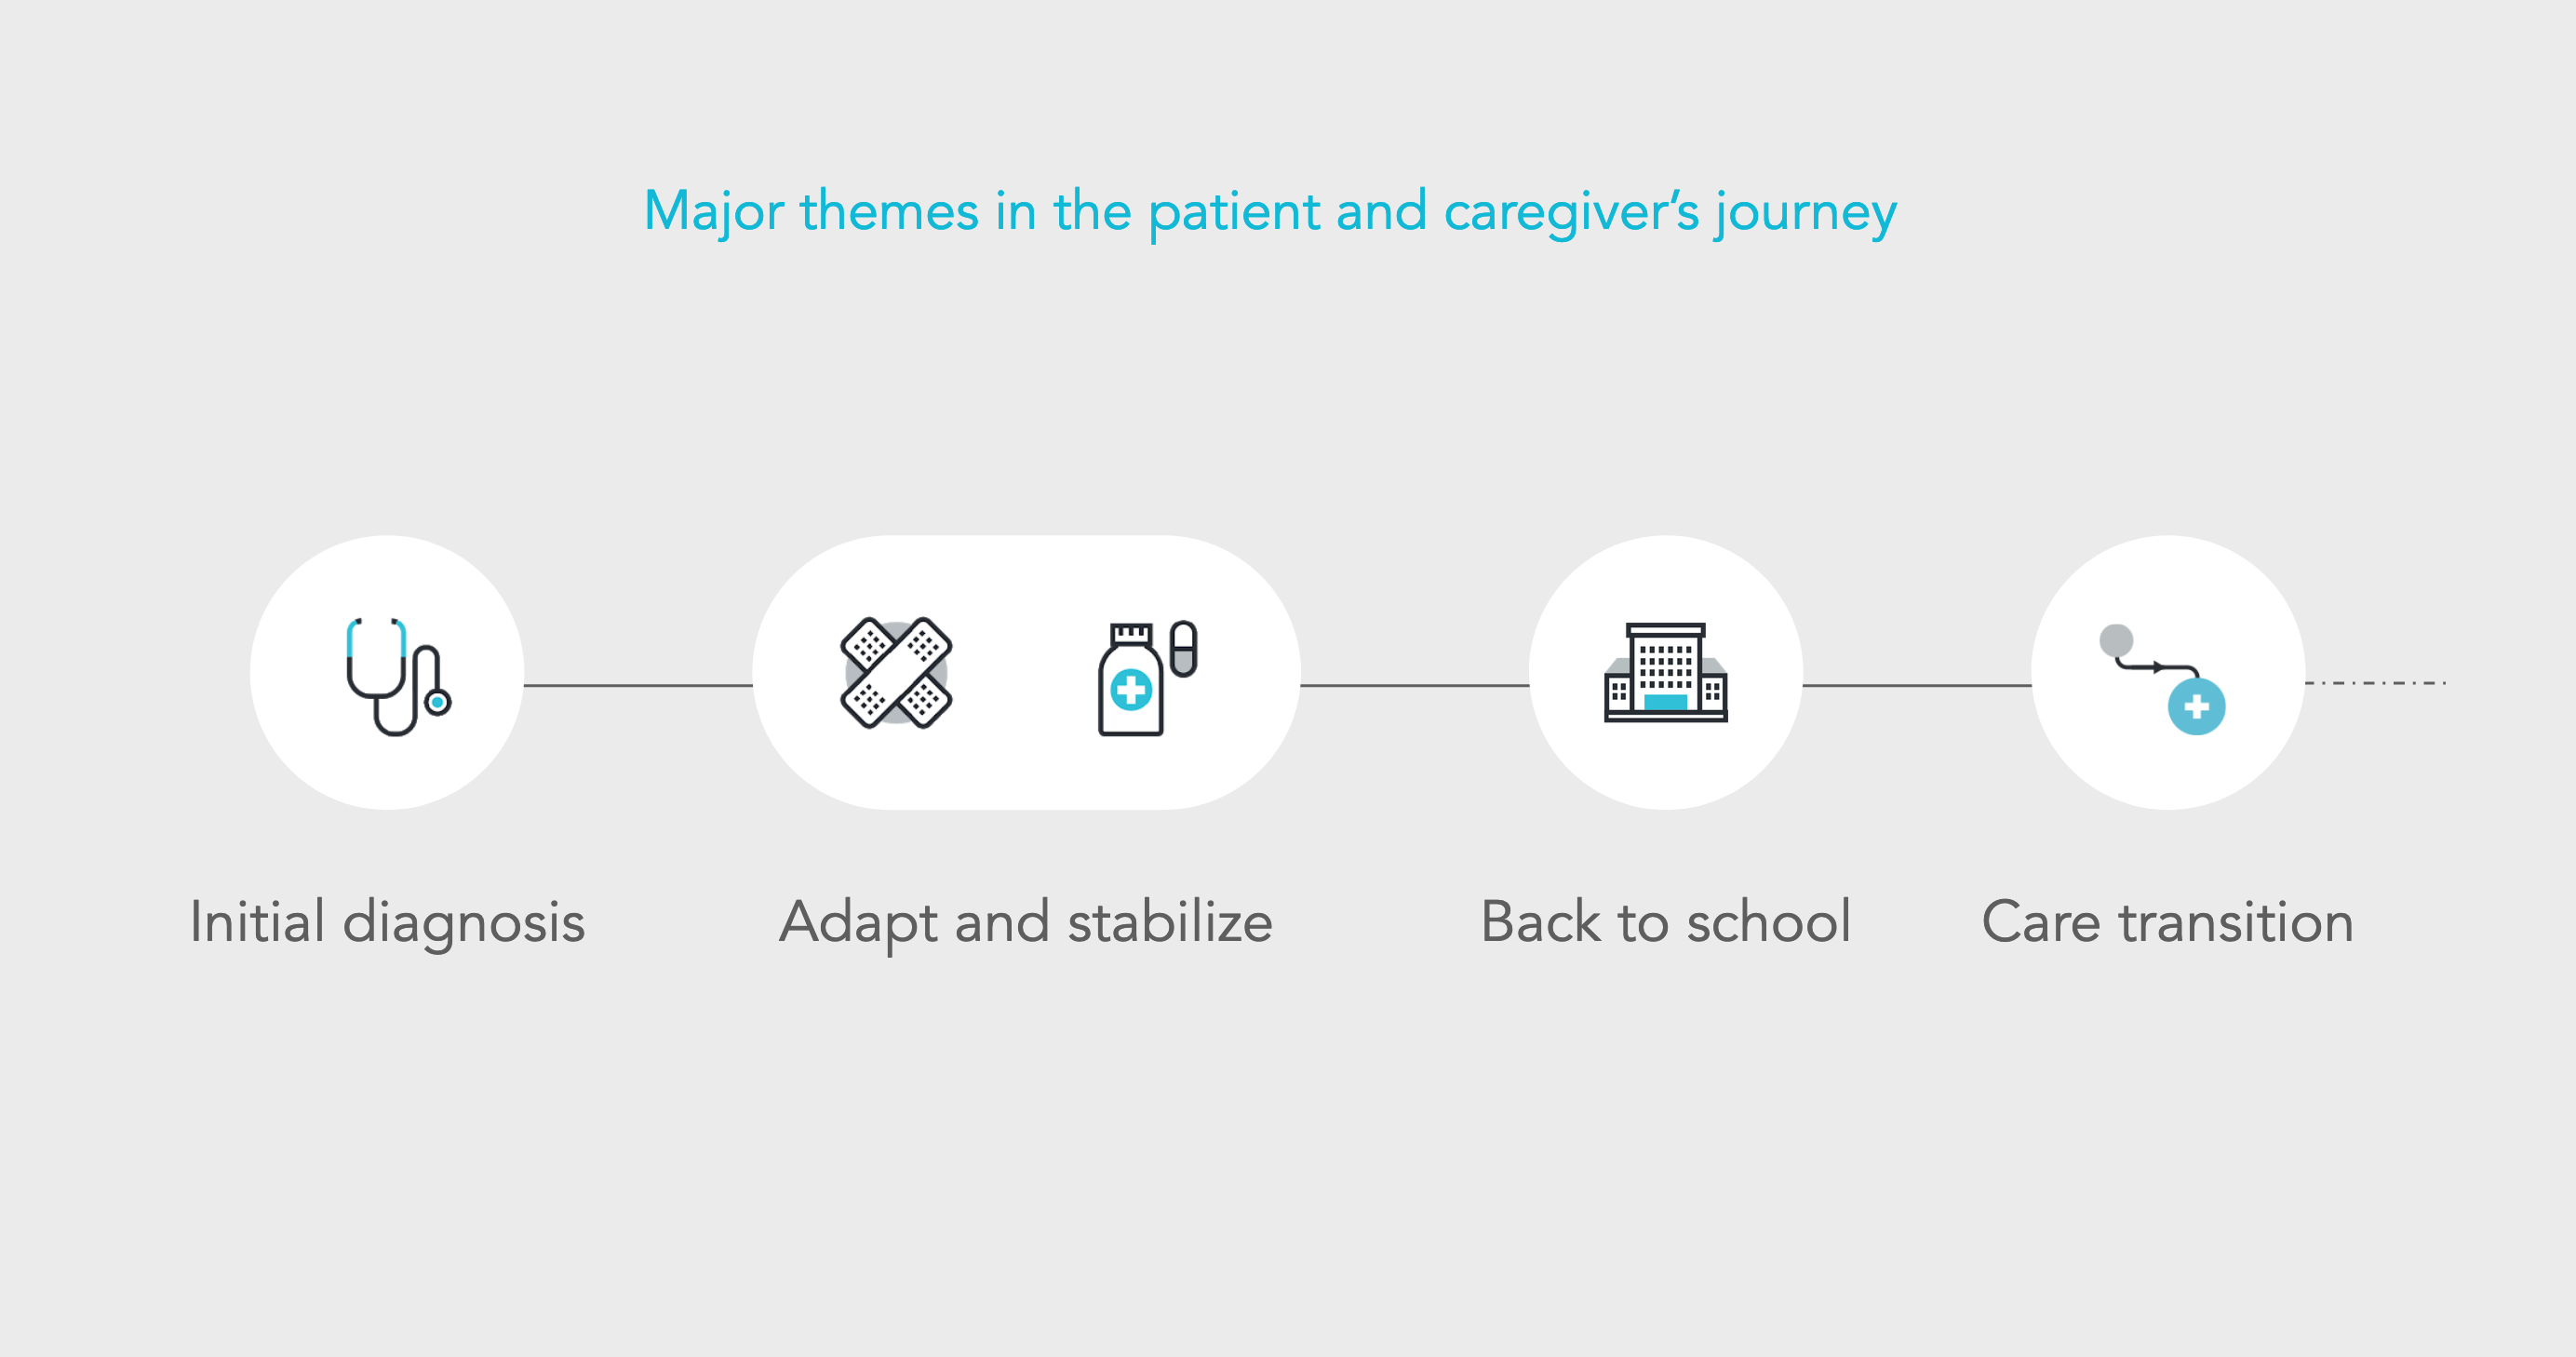 Journey of a Patient and their Caregiver